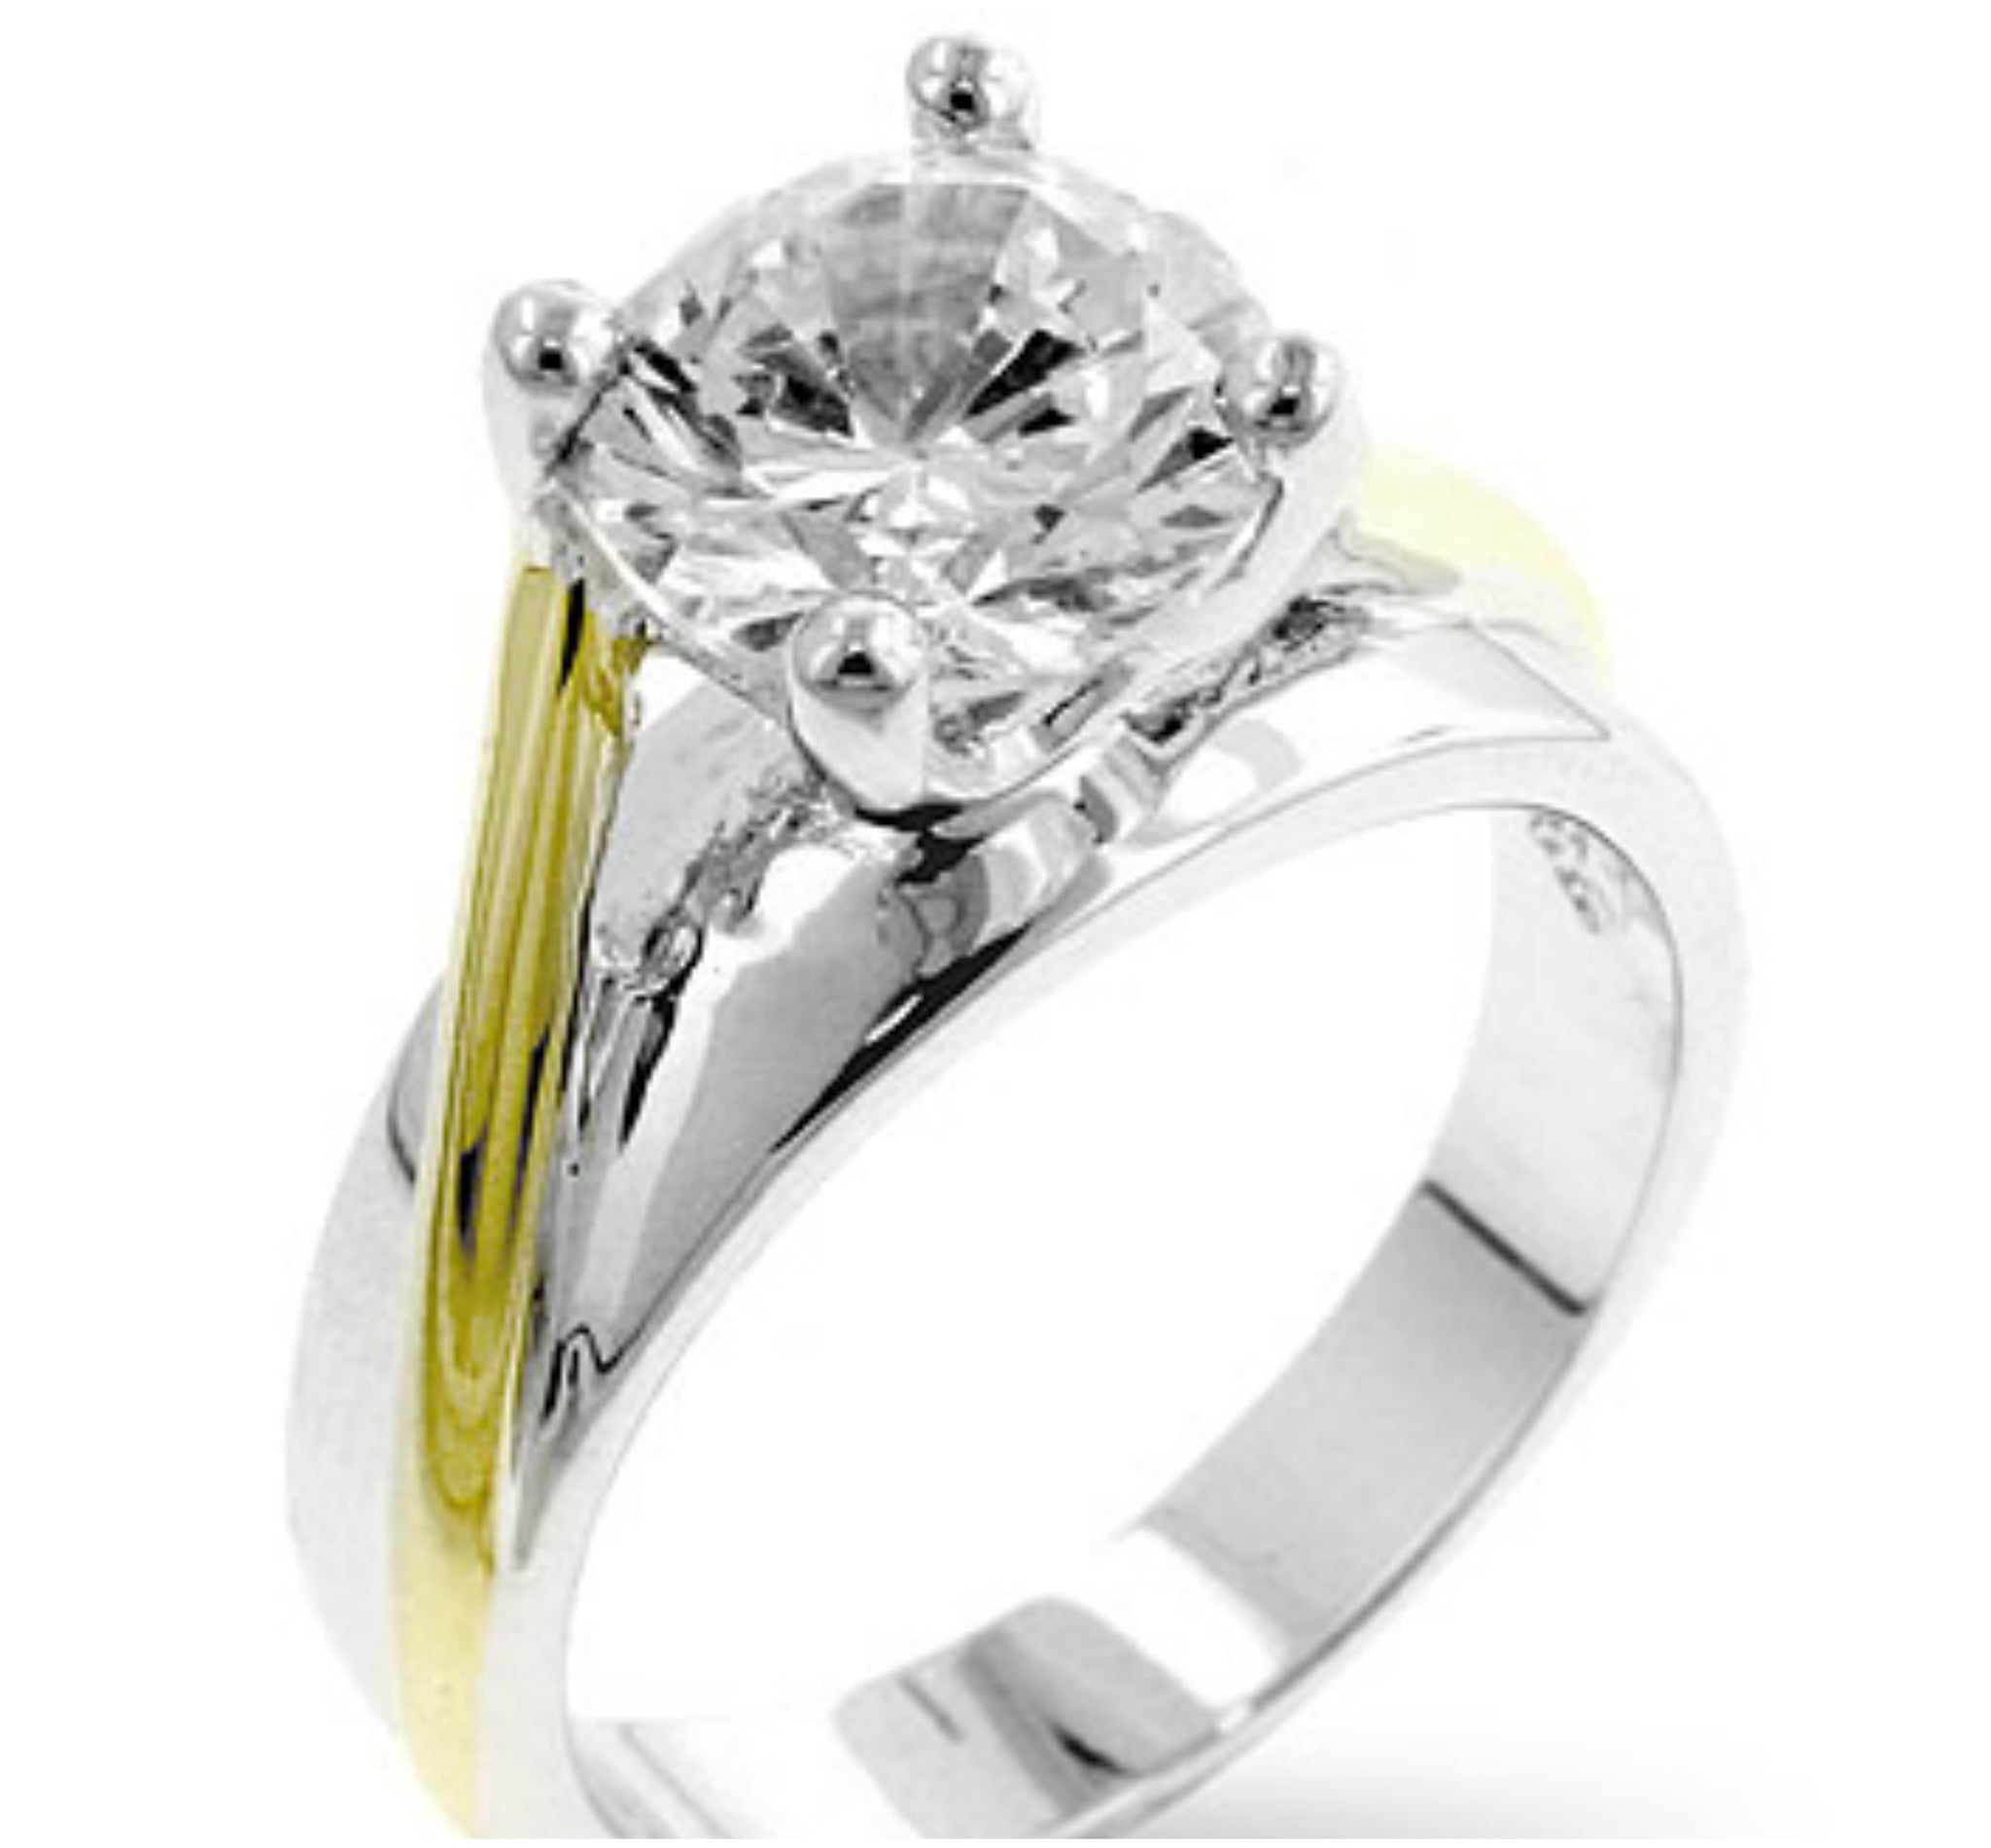 ring real bridal geniune white set two gold piece rng engagement diamond ladies rings